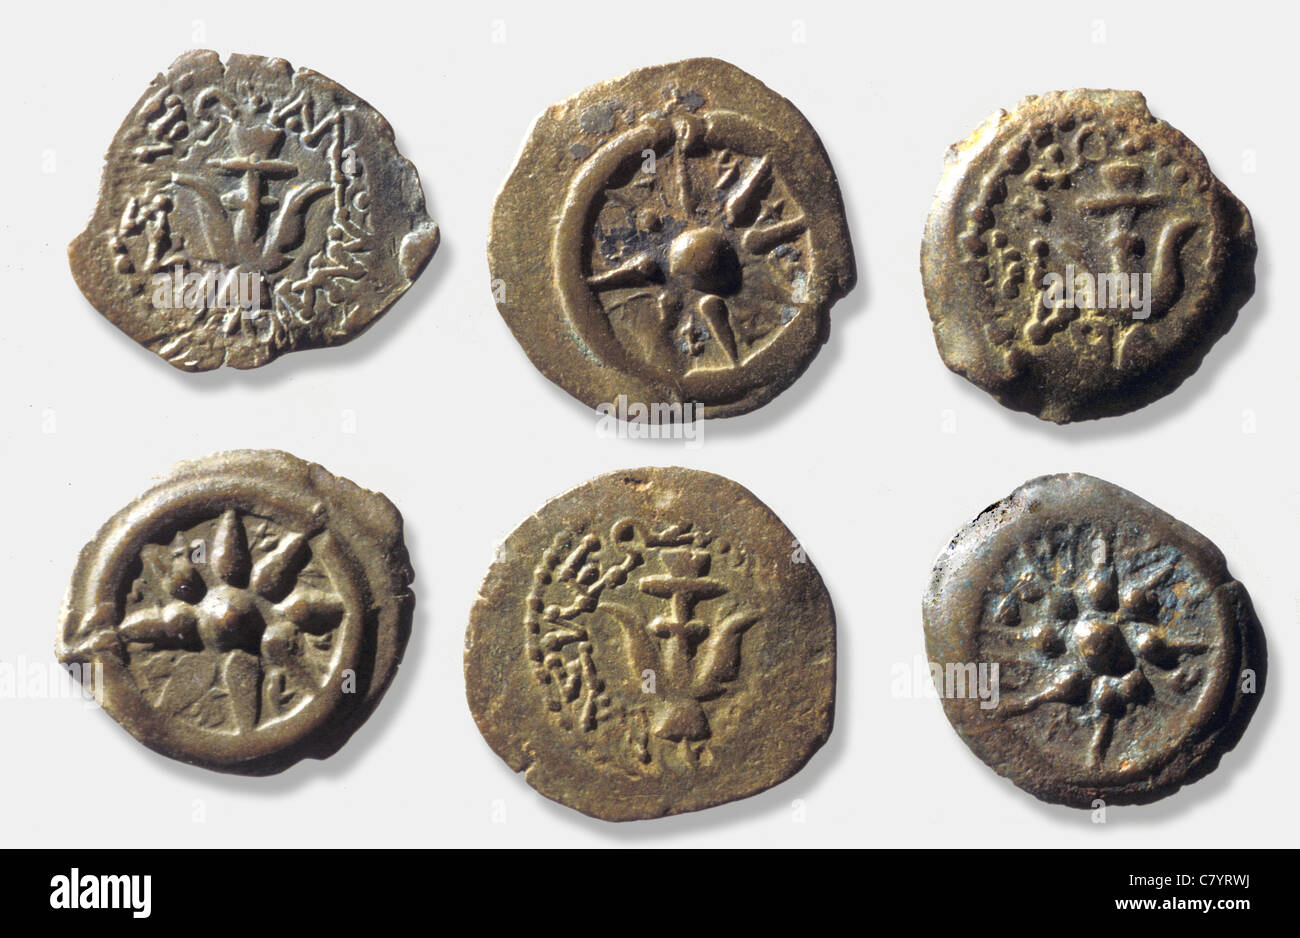 795. COINS OF ALEXANDER YANNAI, A KING OF THE HASMONEAN DYNASTY (103 - 76 B.C.) - Stock Image